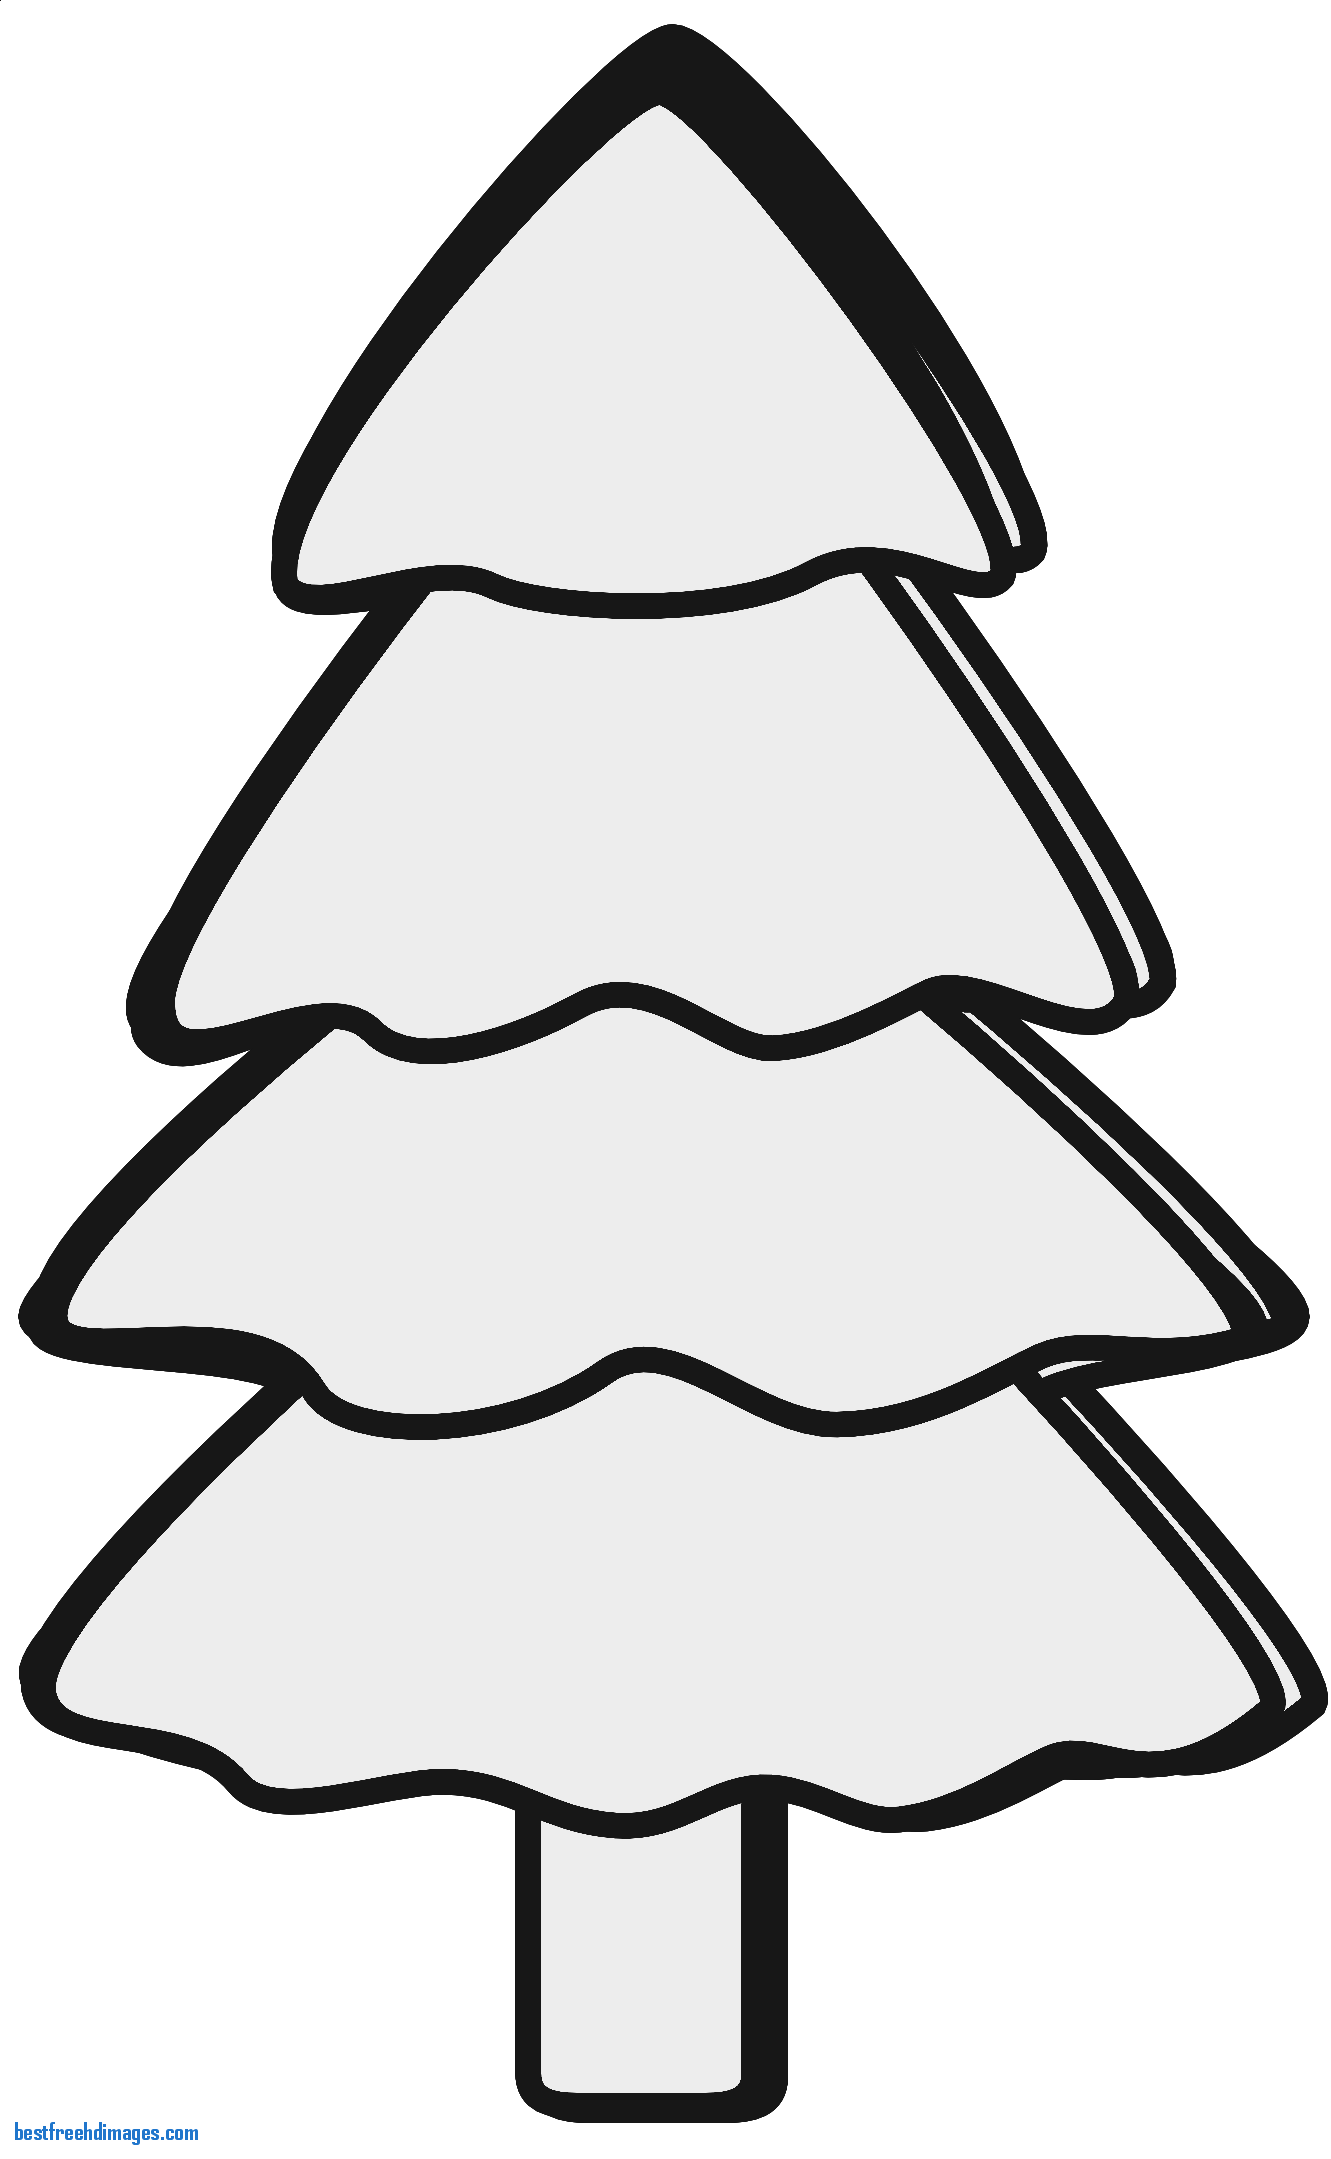 Grinch tree clipart black and white Charlie Brown Christmas Clipart | Free download best Charlie Brown ... black and white